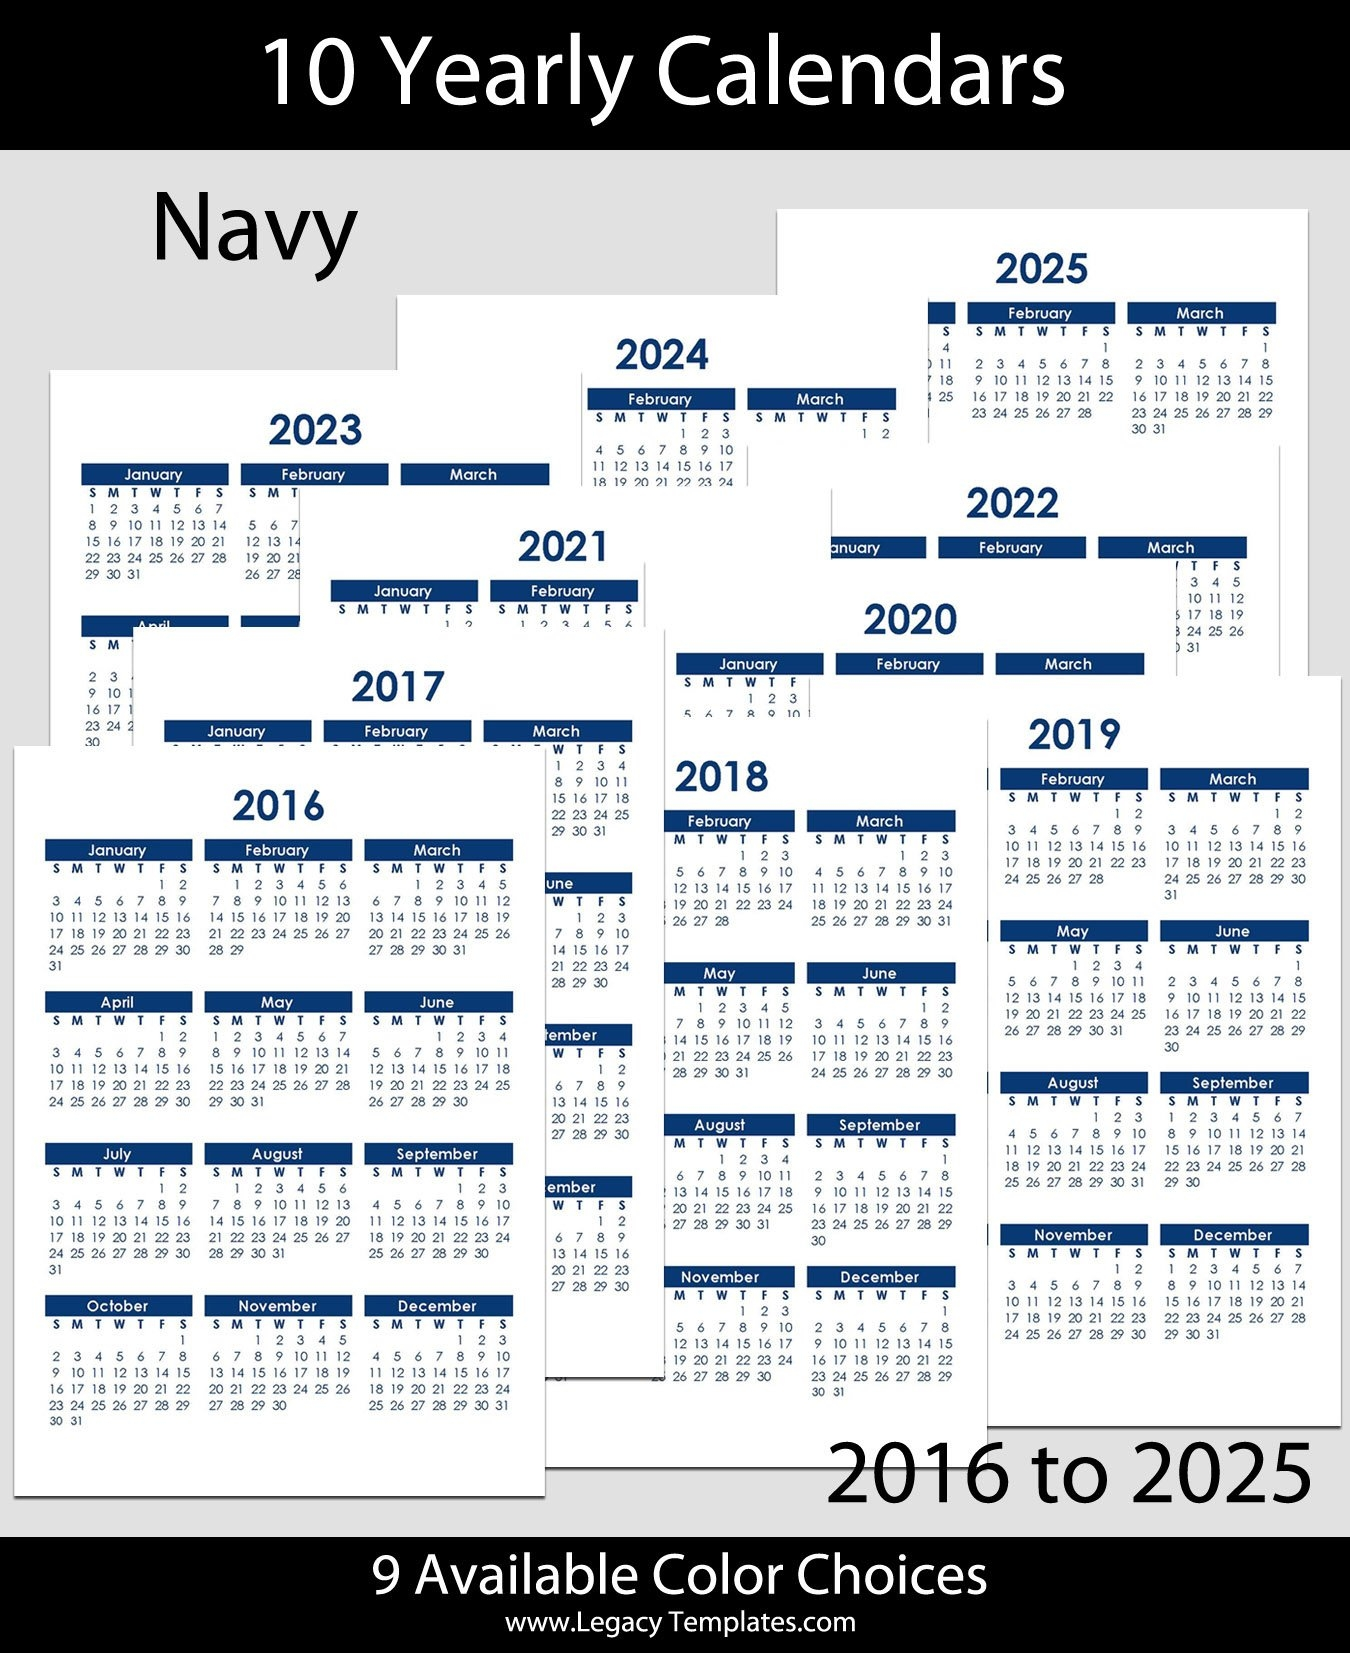 2016 To 2025 Yearly Calendar - A4 | Legacy Templates within Yearly Calendars 2021 To 2025